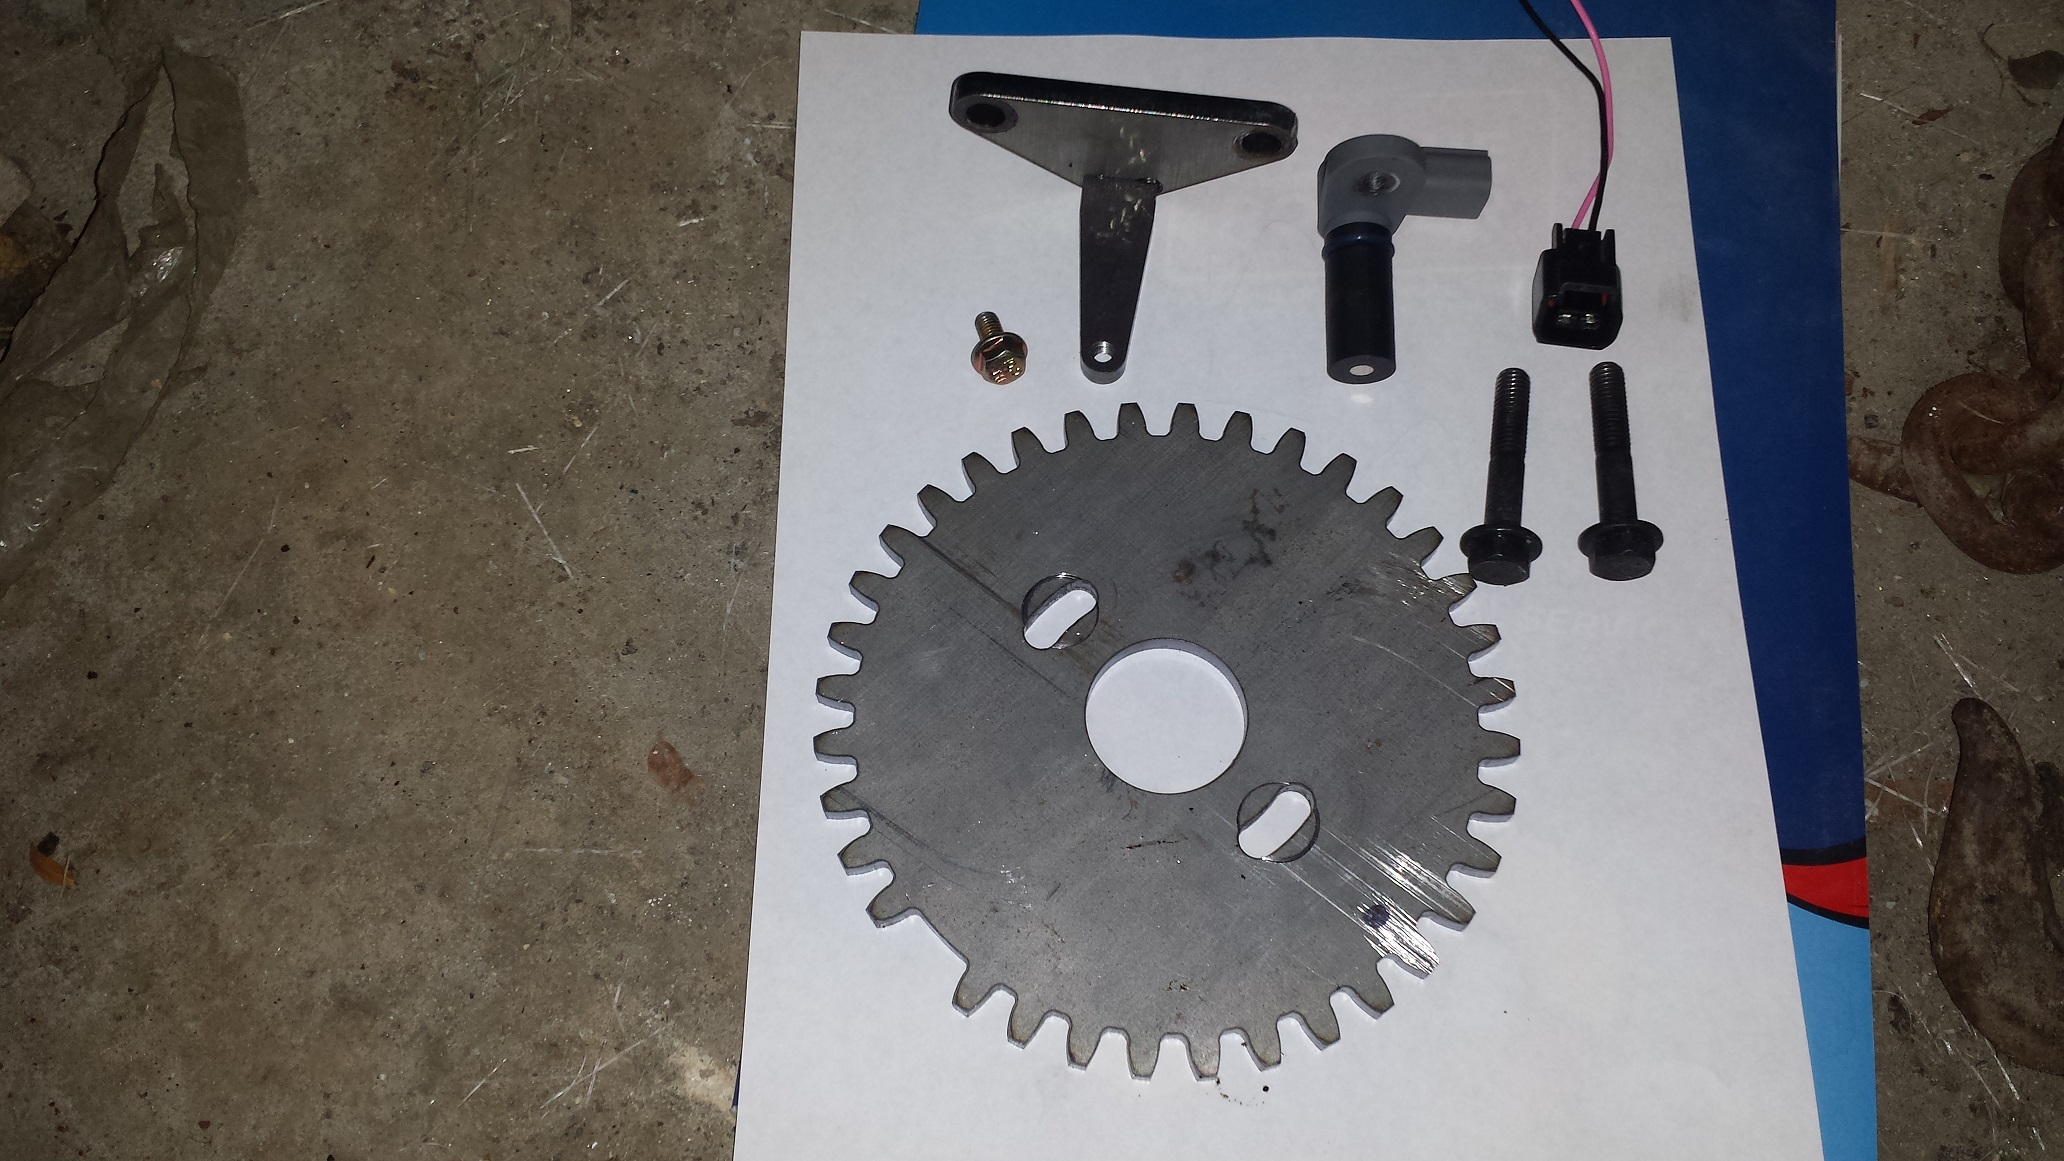 2TC 3TC 2TG EFI 36-1 Trigger Wheel Kit with VR Sensor and Pigtail from  Foxau2 Reproductions